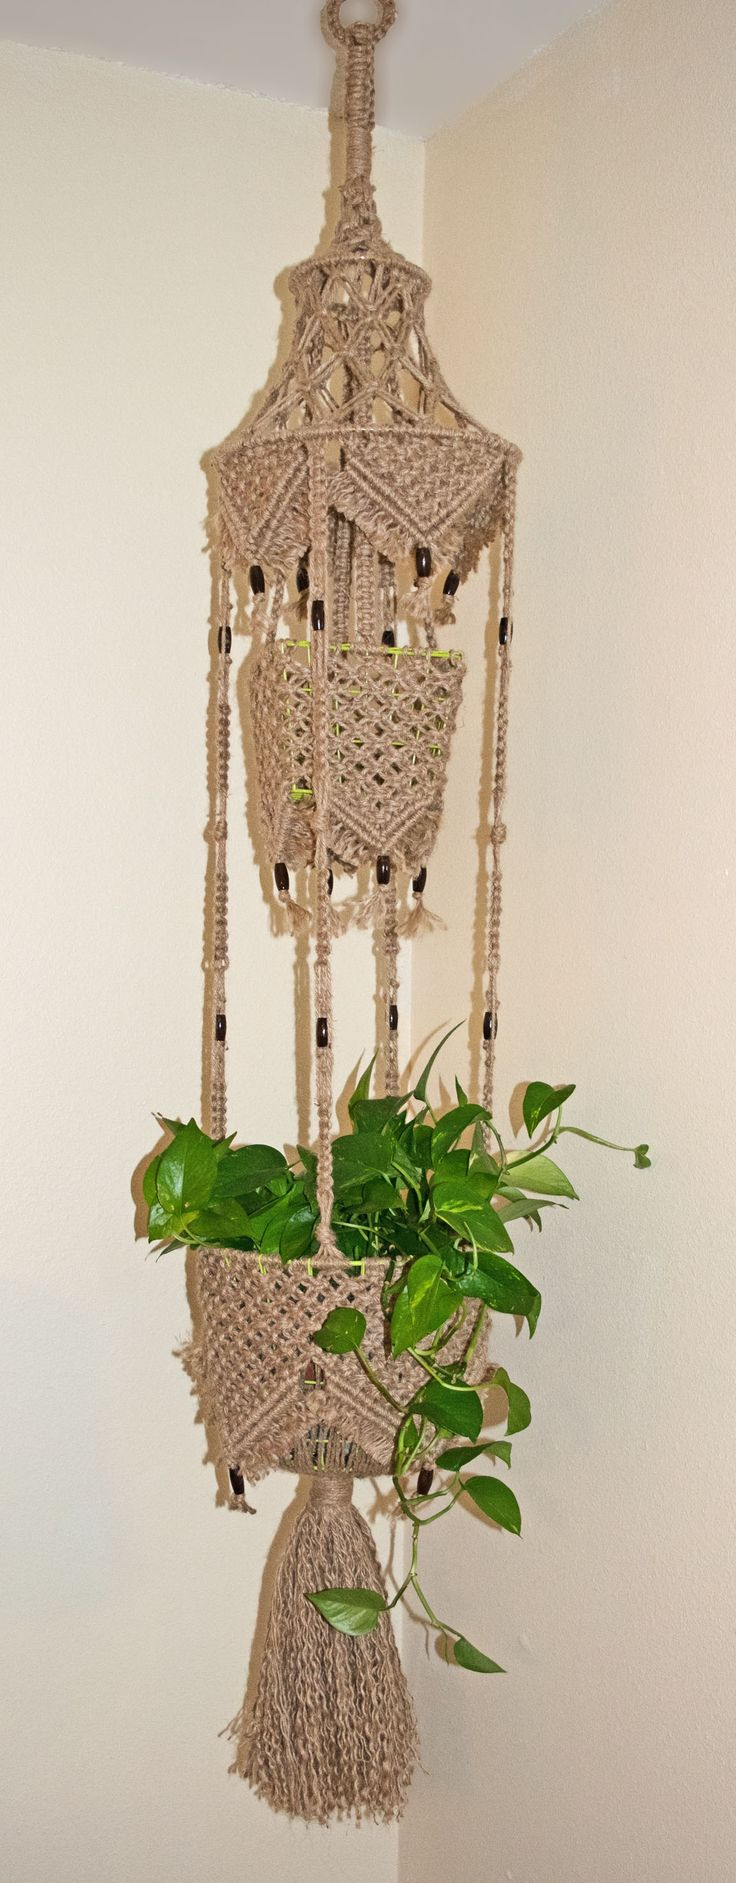 macrame plant hangers walmart 47 best images about macrame on macrame owl 5554